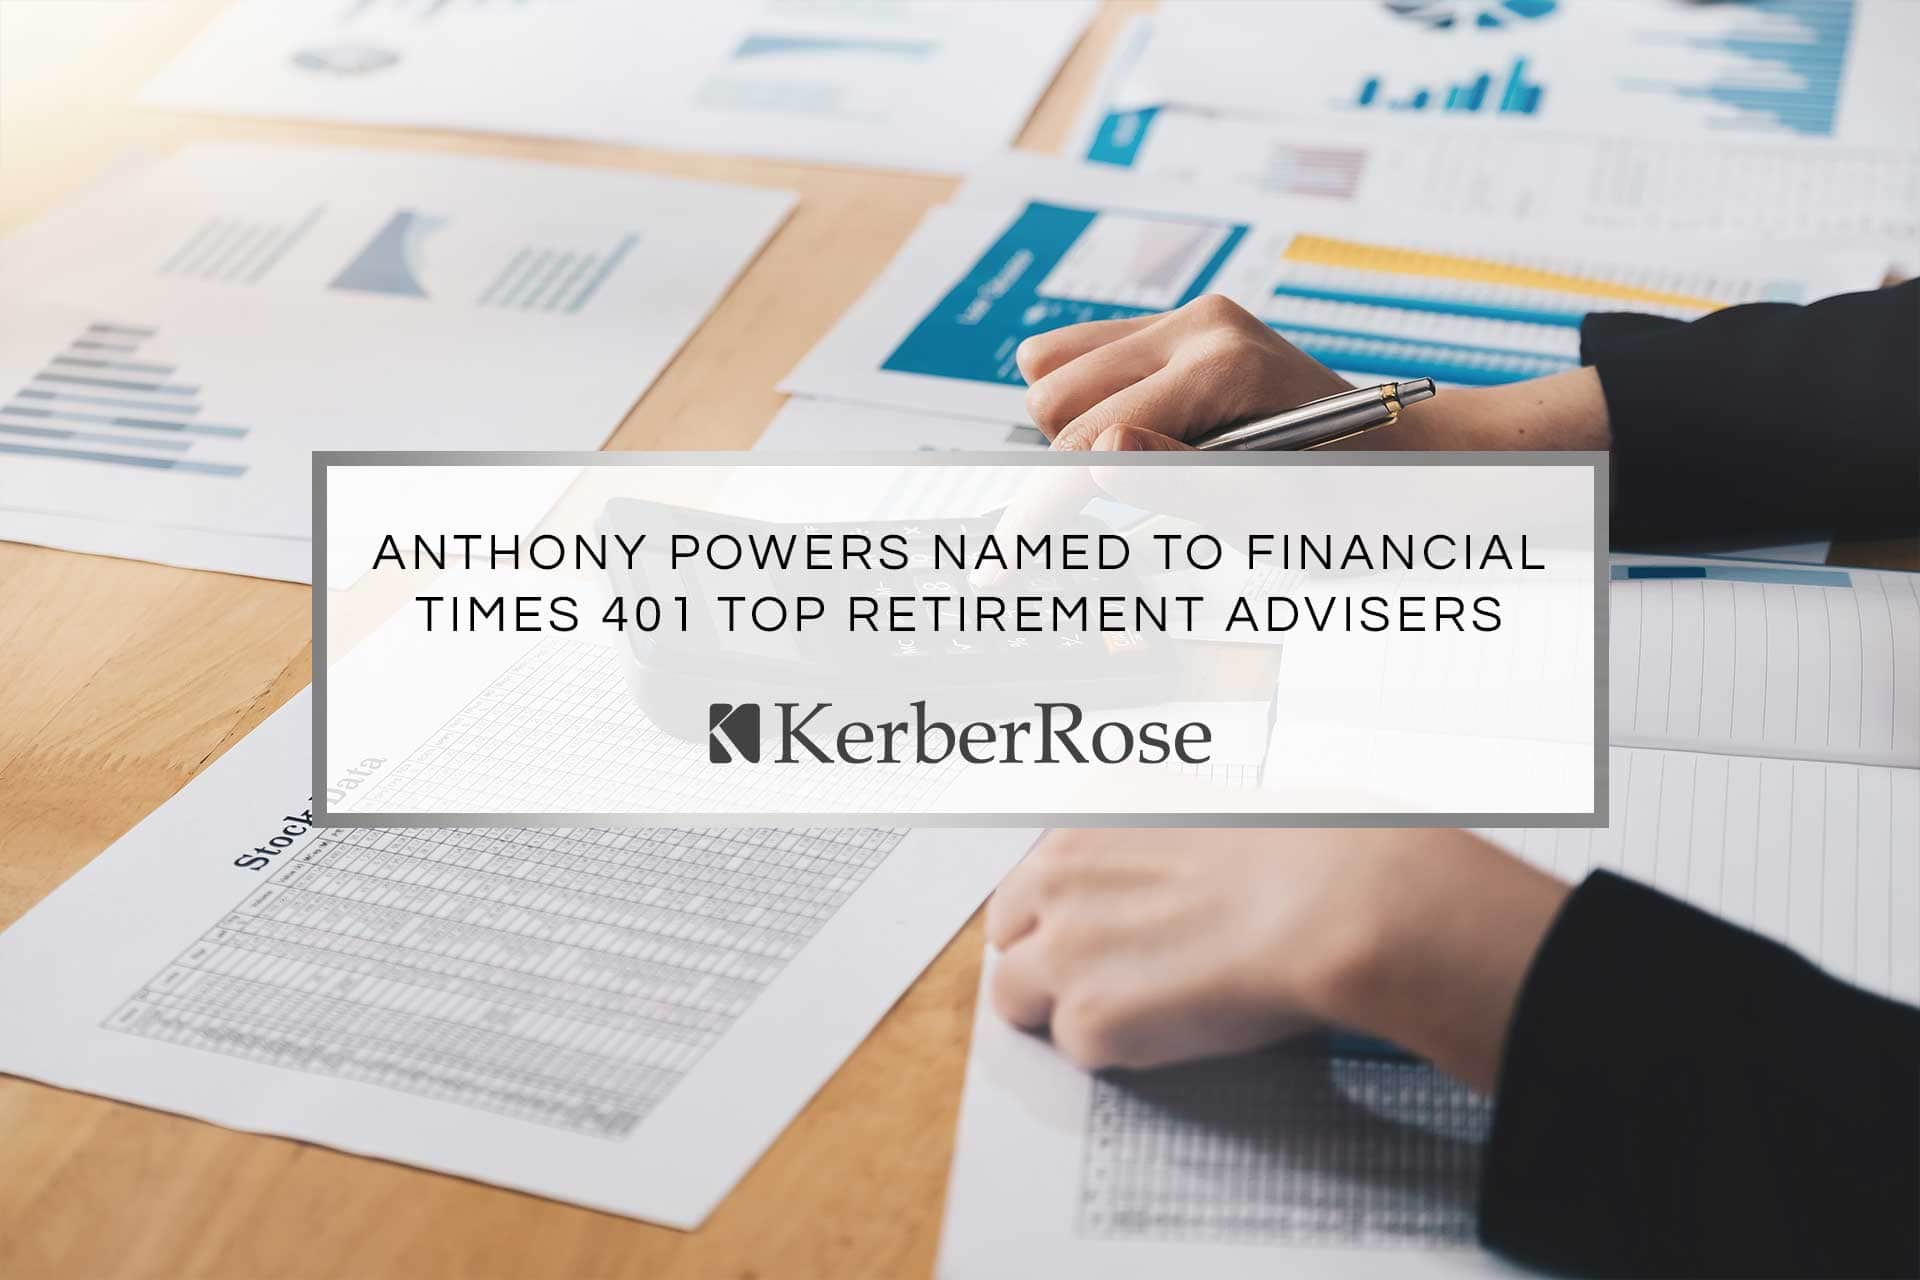 Anthony Powers Named to Financial Times 401 Top Retirement Advisors   KerberRose